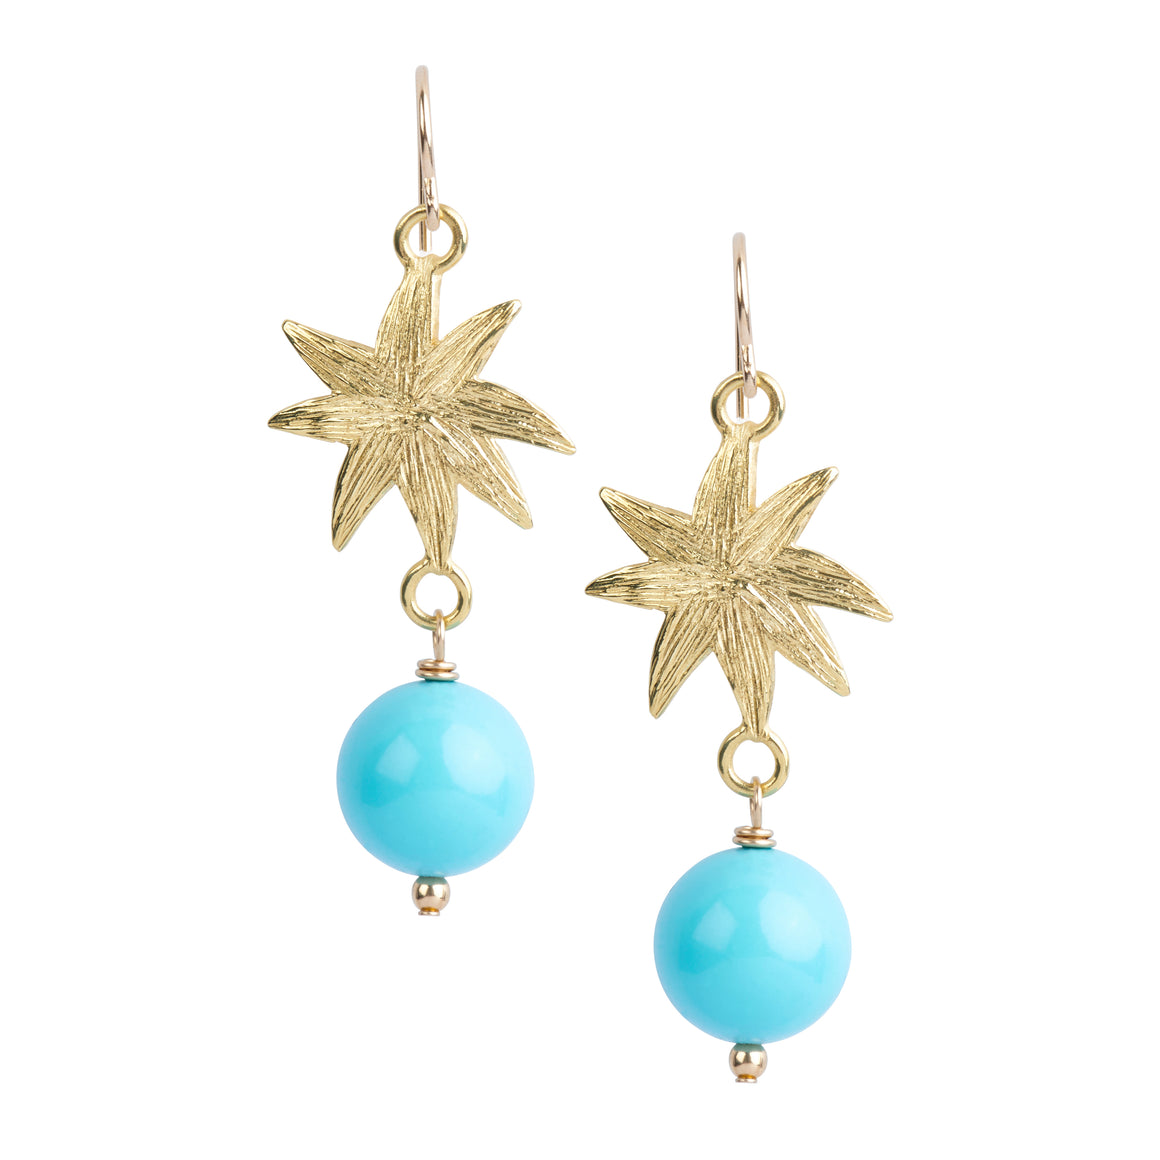 HopeStar Earrings in Turquoise - USE CODE THEEND50 TO BUY FOR $37